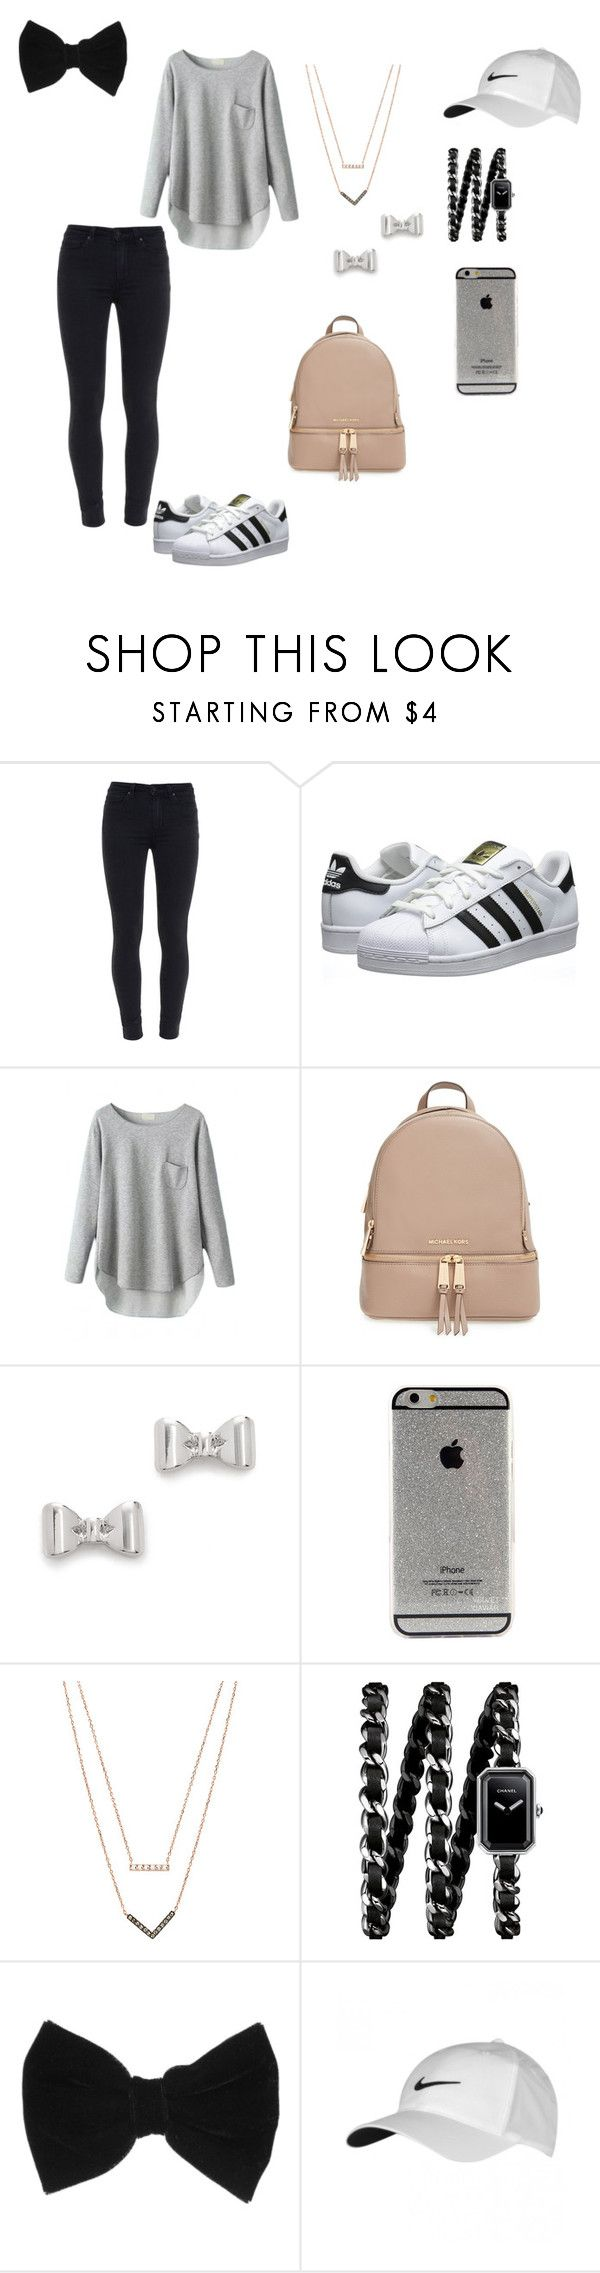 """""""Untitled #14"""" by http-txmmi on Polyvore featuring Paige Denim, adidas Originals, MICHAEL Michael Kors, Marc by Marc Jacobs, Michael Kors, Chanel, claire's and NIKE"""